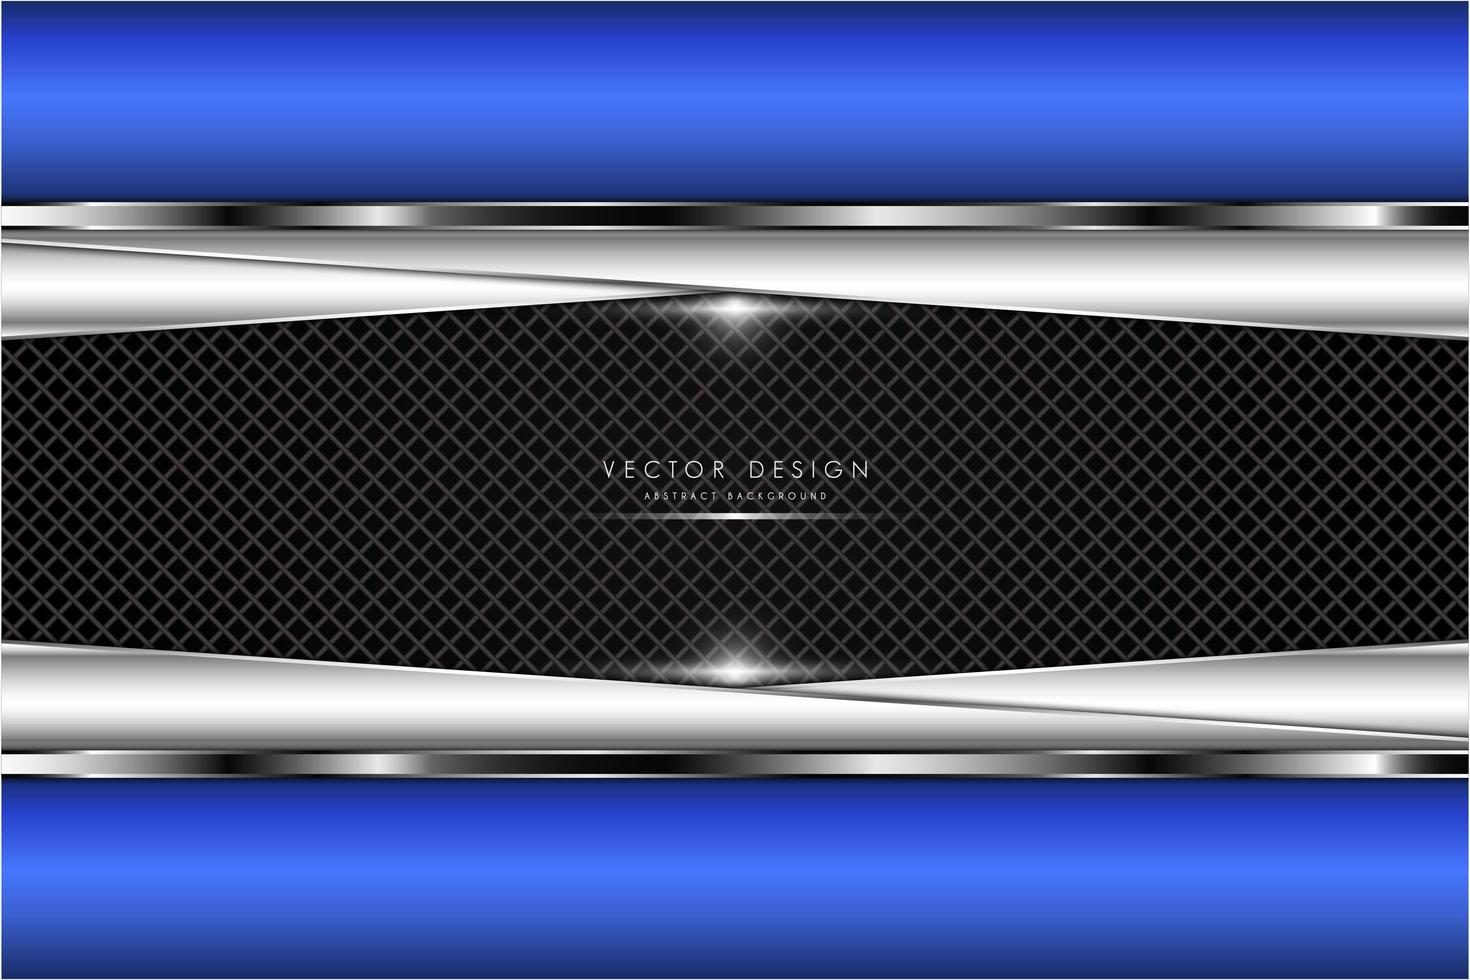 Metallic blue border and silver angled plates over grate texture vector